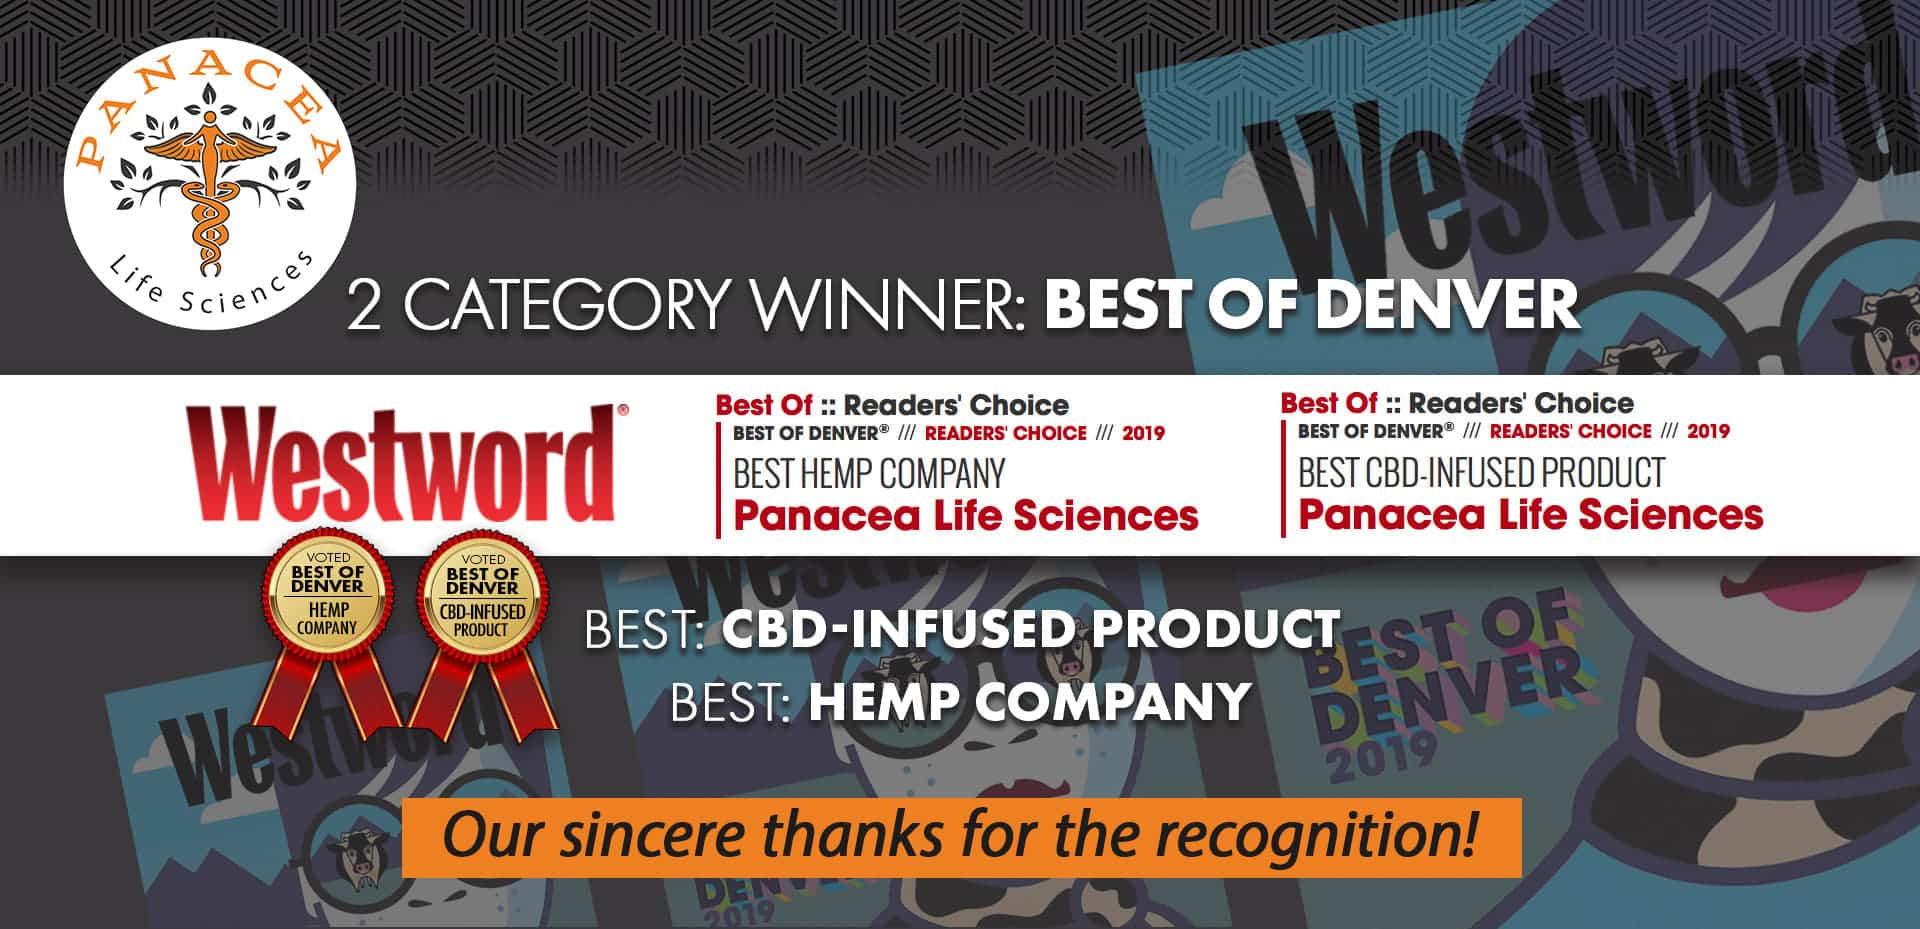 Winner Best CBD Infused Products/Best Hemp Company- Panacea Life Sciences